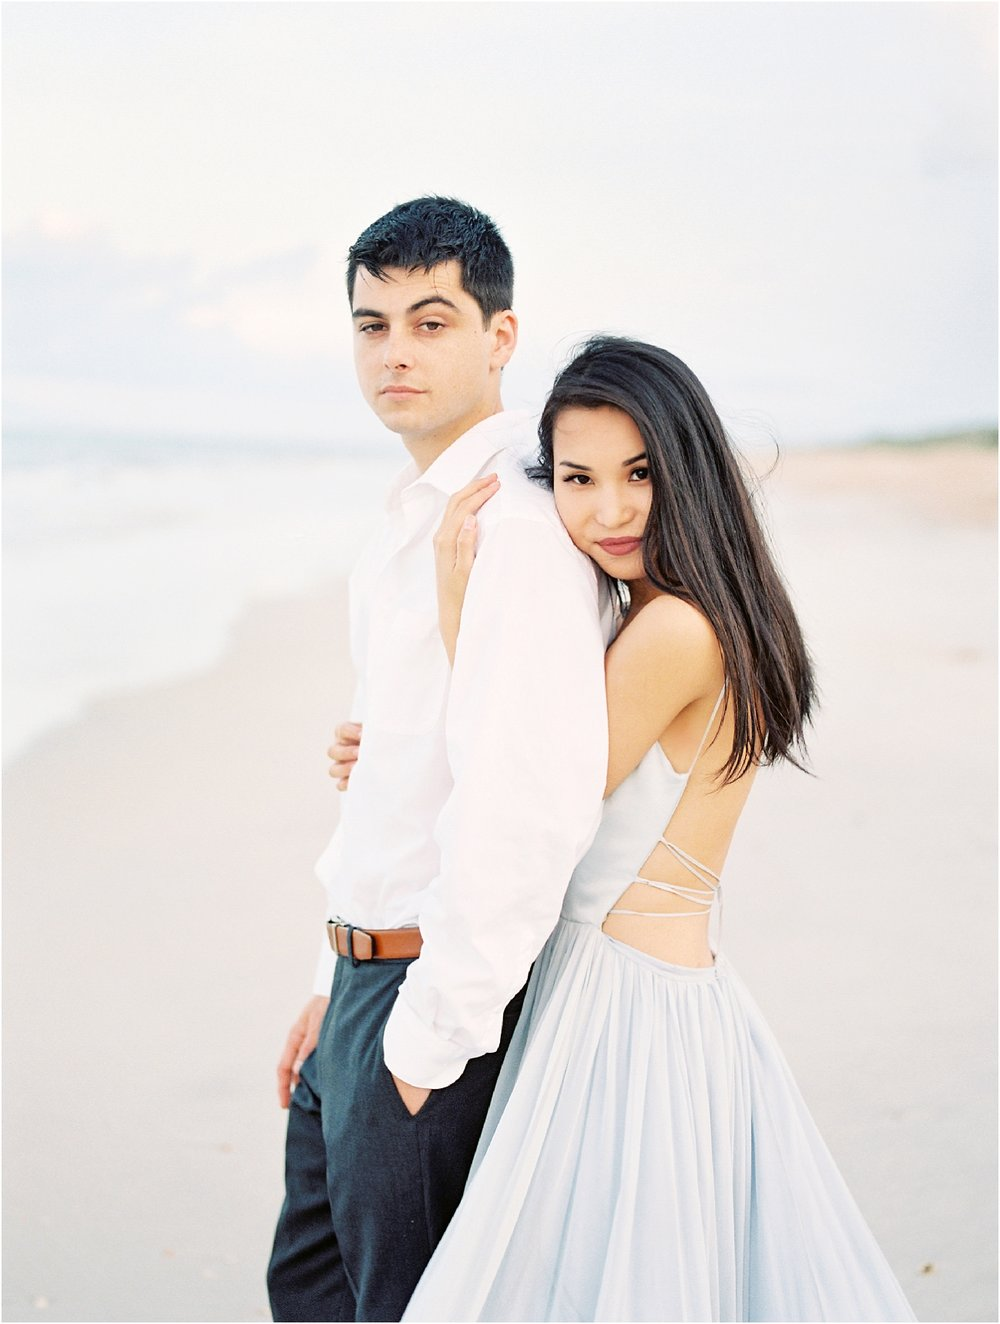 Lisa Silva Photography- Ponte Vedra Beach, St. Augustine and Jacksonville, Florida Fine Art Film Wedding Photography- Sunset Engagement Session at  Guana Beach State Park_0004.jpg